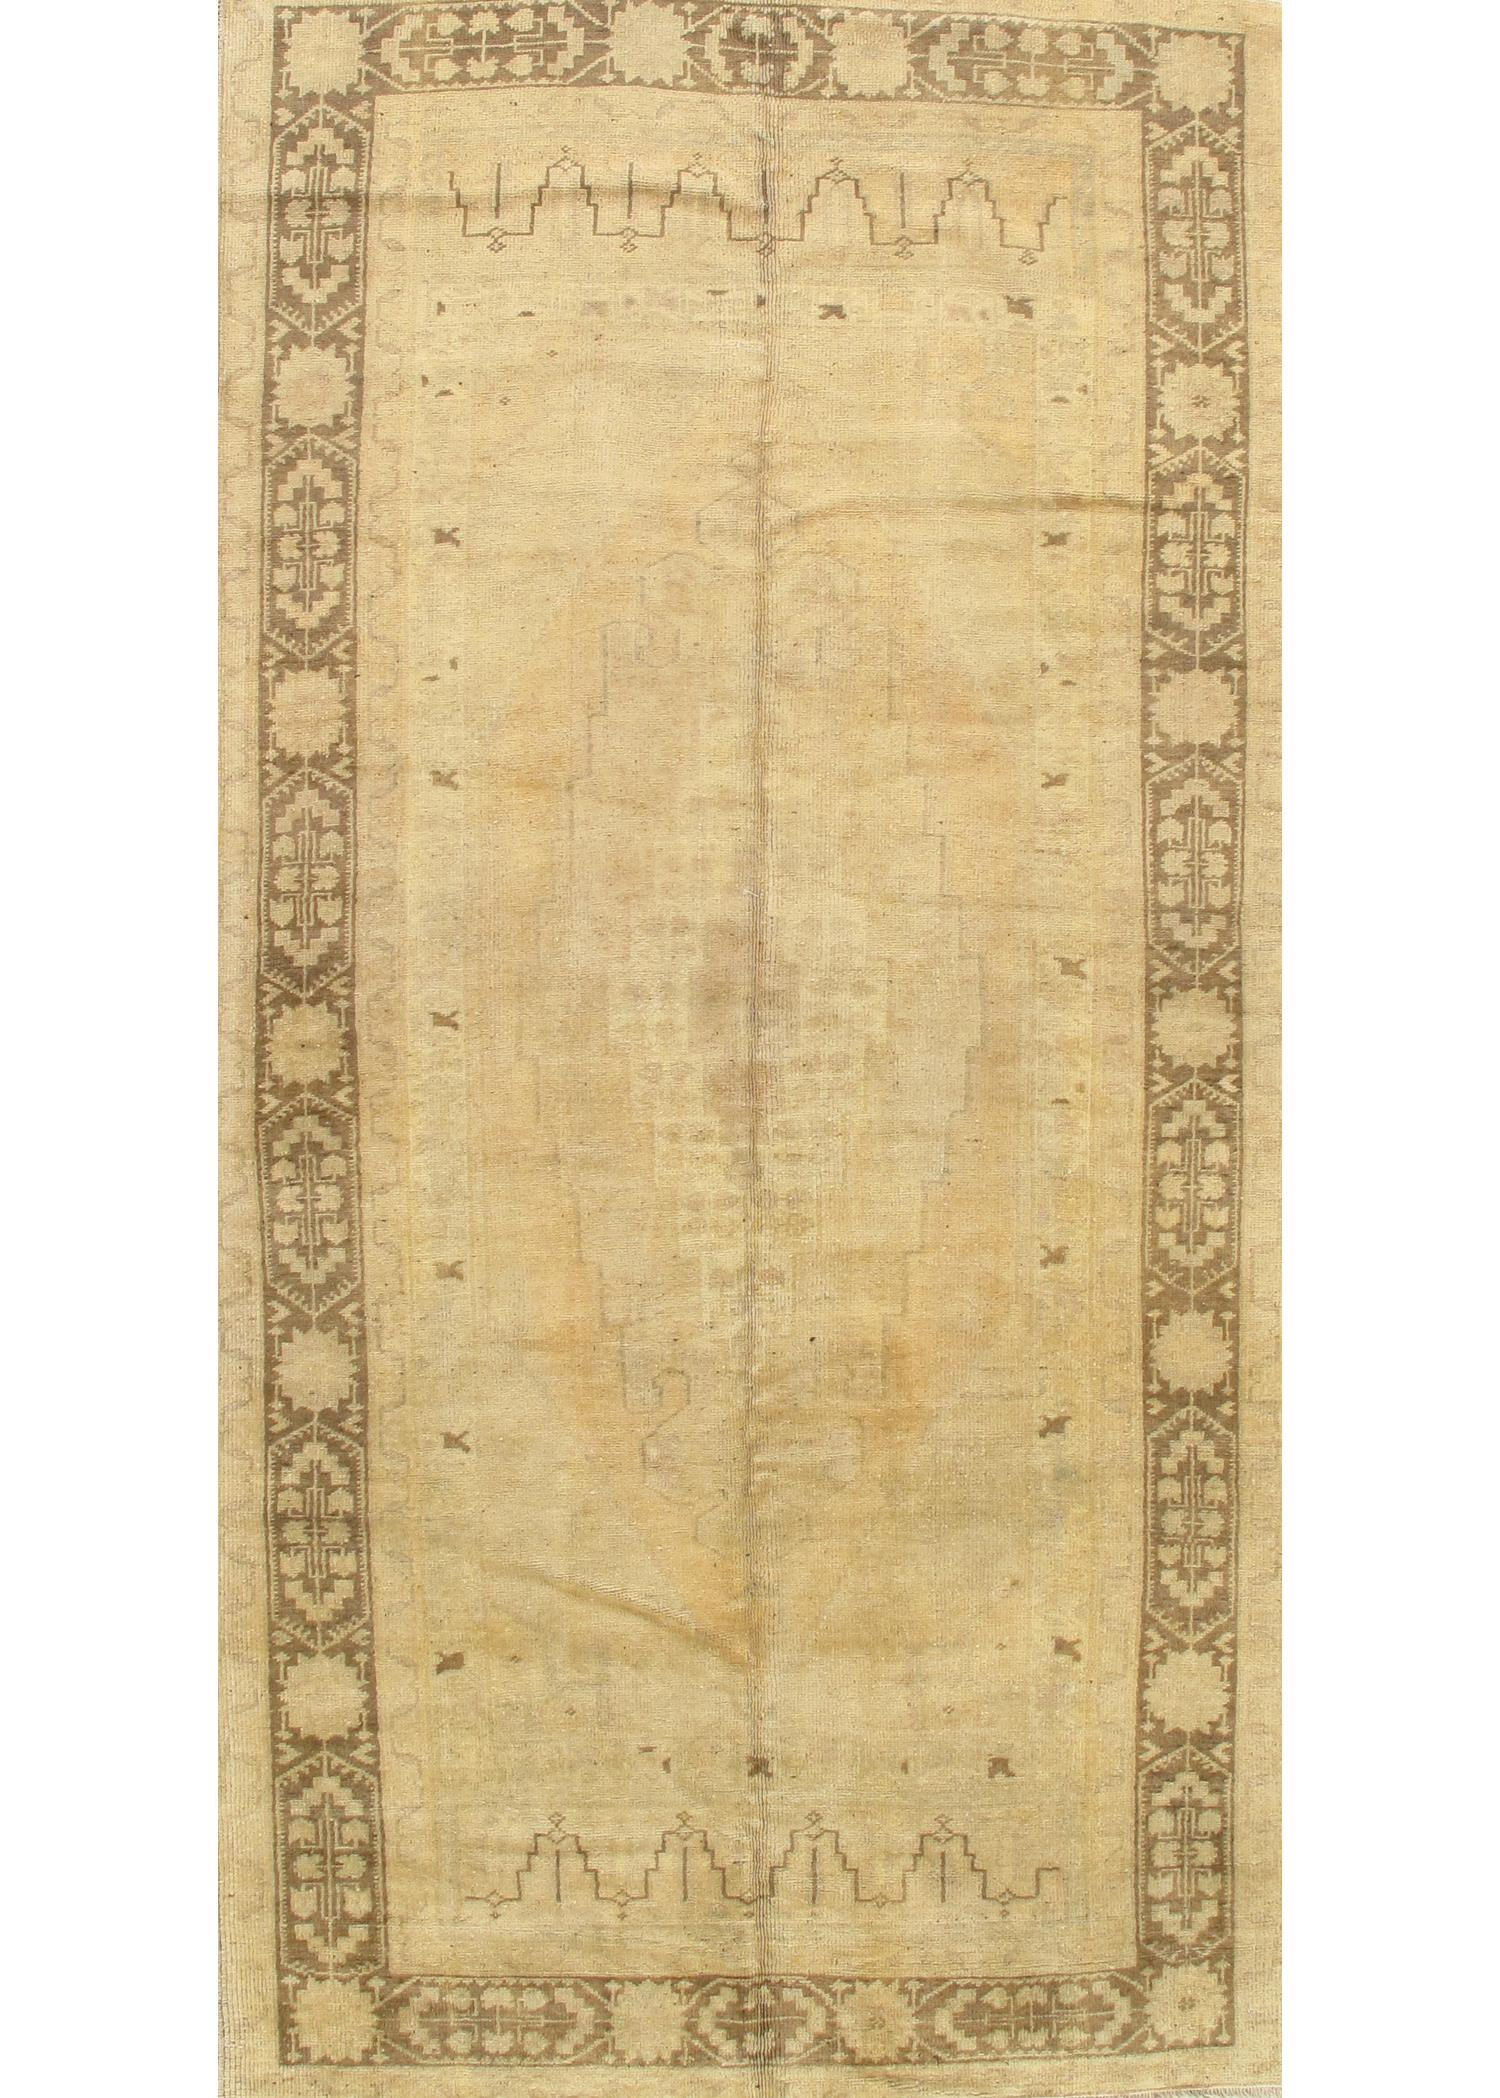 Antique Khotan Rug, 5' X 9'